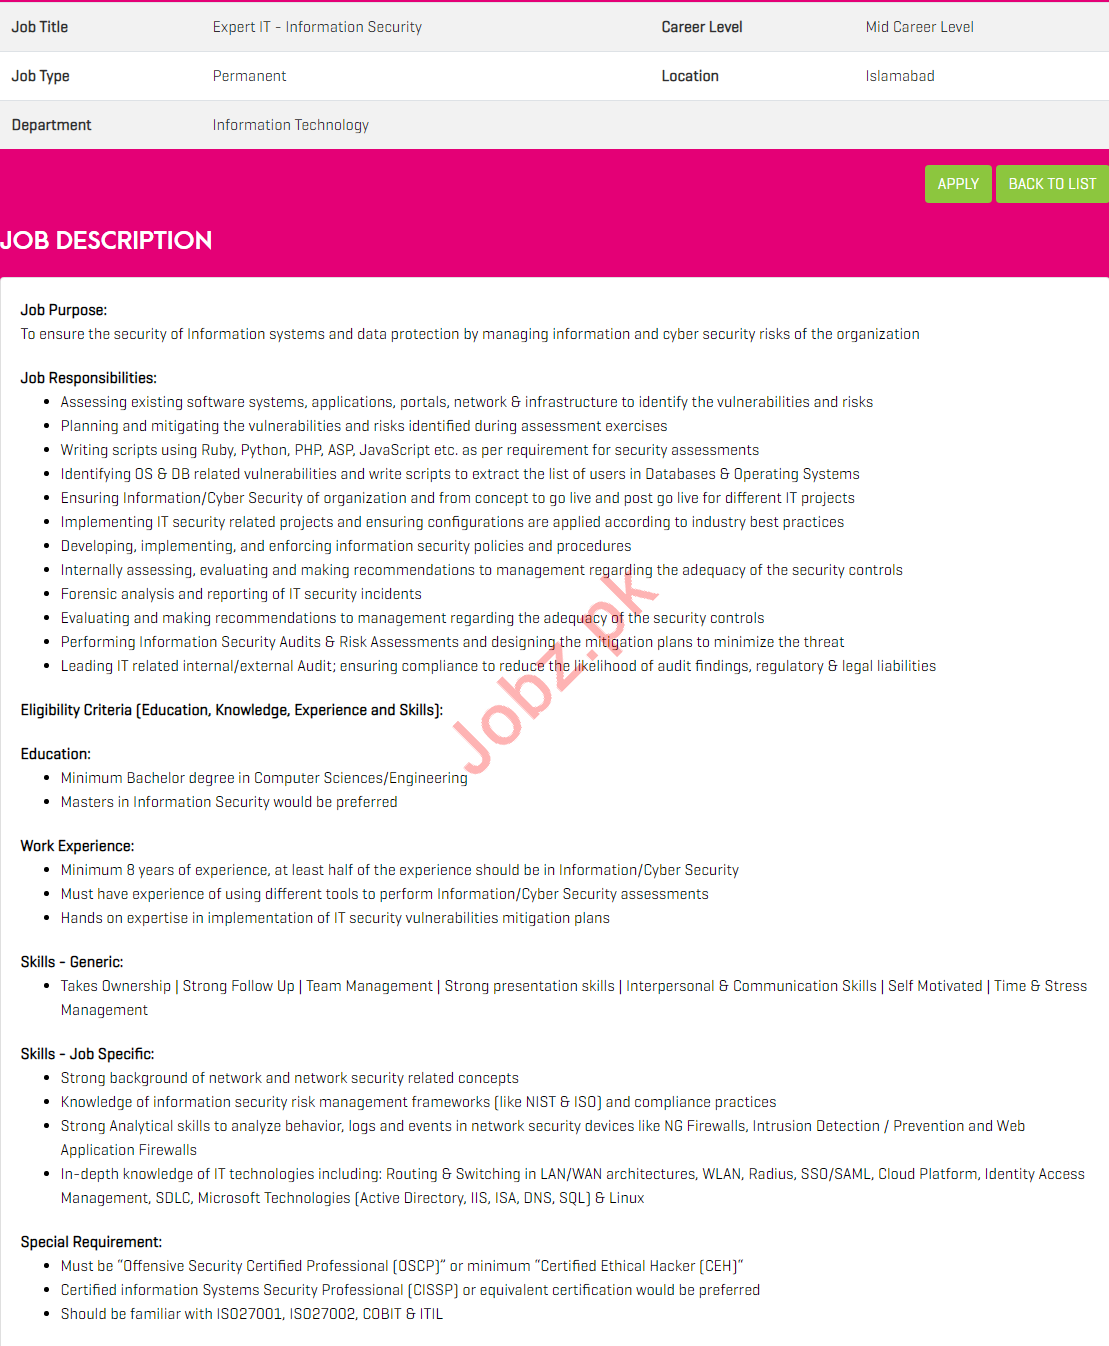 Expert IT Information Security Job 2019 in Islamabad